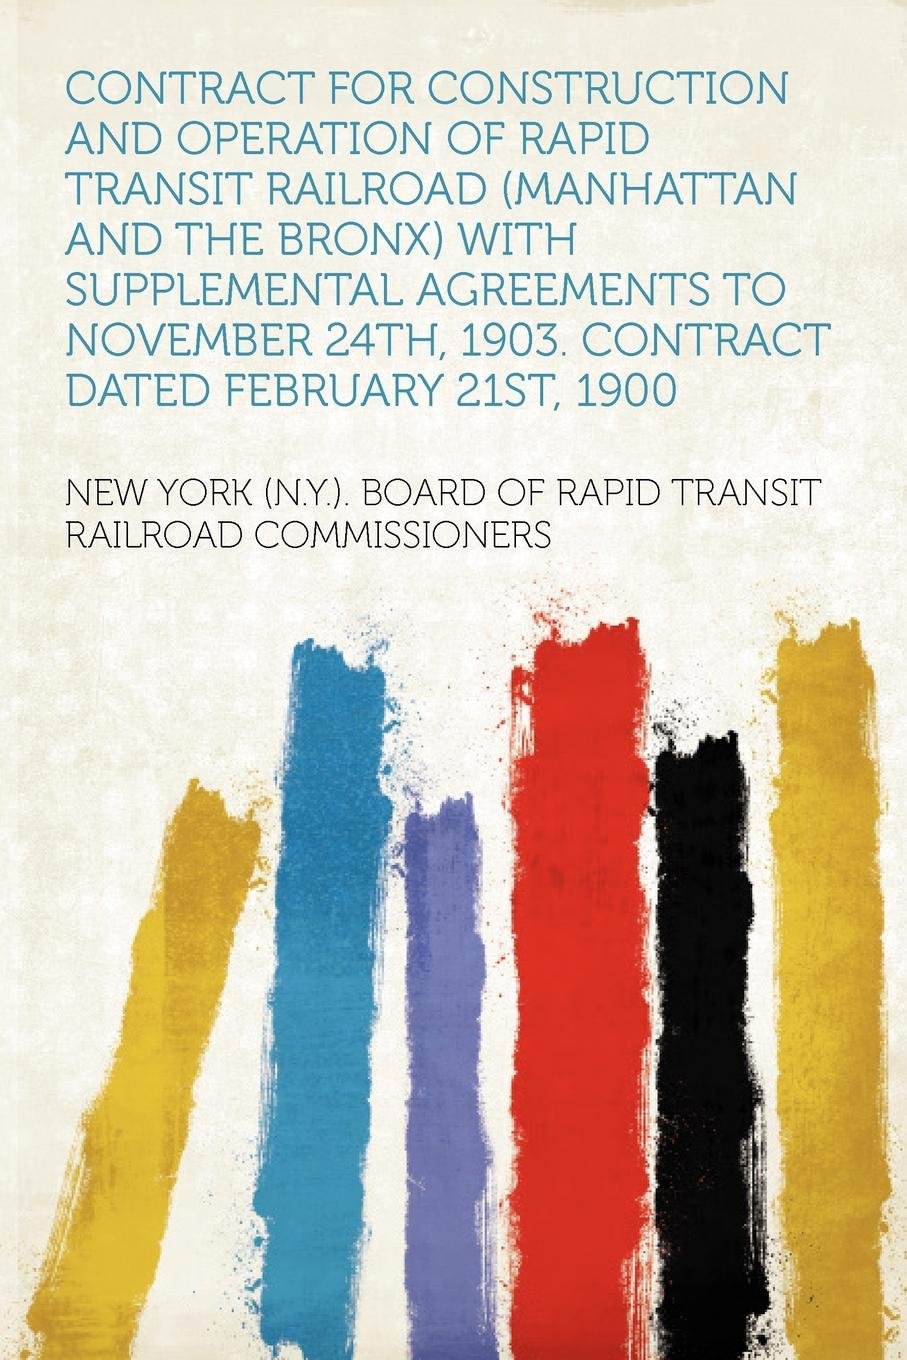 Download Contract for Construction and Operation of Rapid Transit Railroad (Manhattan and the Bronx) With Supplemental Agreements to November 24th, 1903. Contract Dated February 21st, 1900 ebook